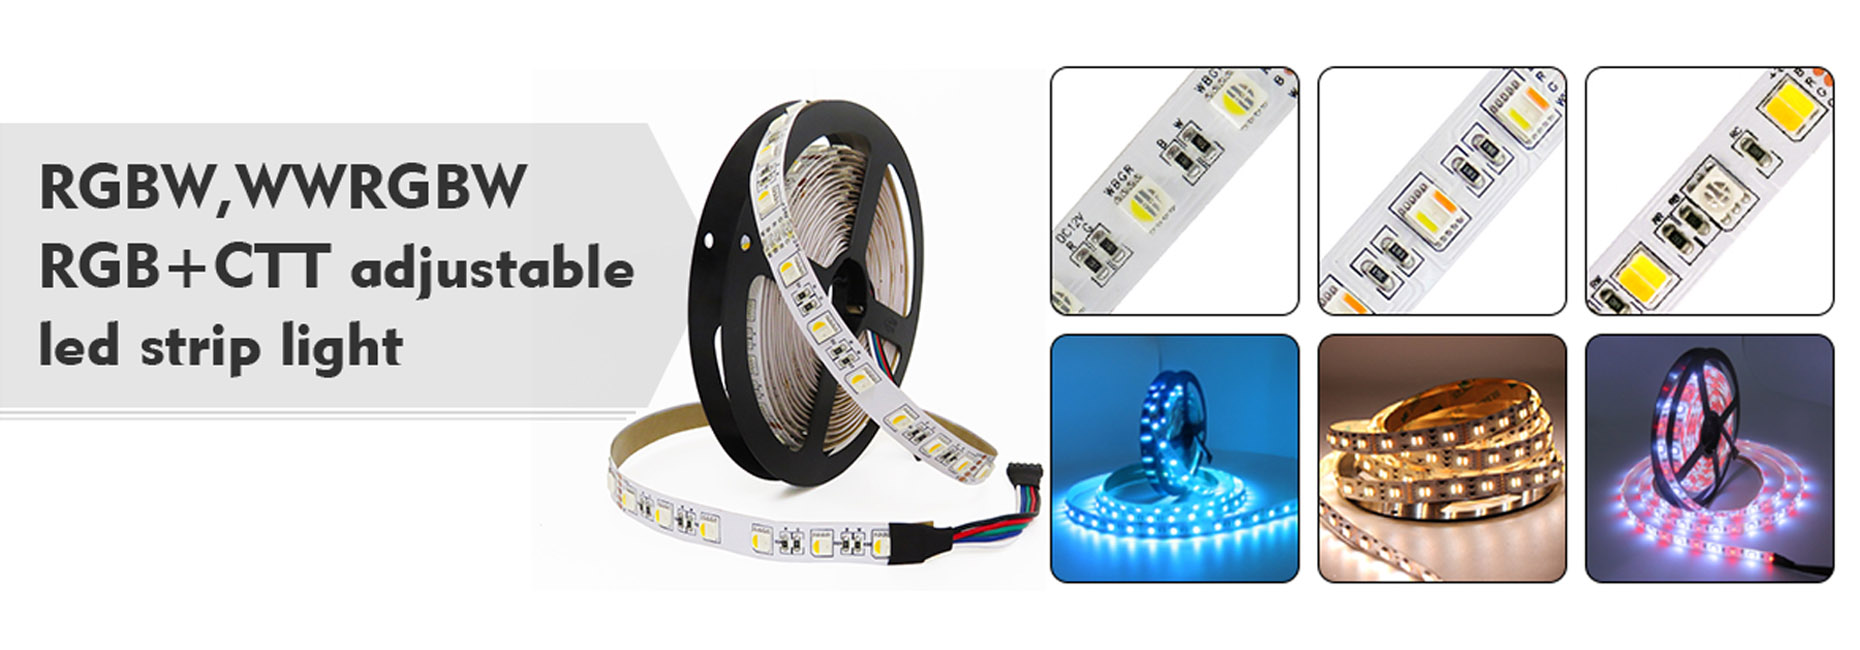 RGBW LED Strip Light